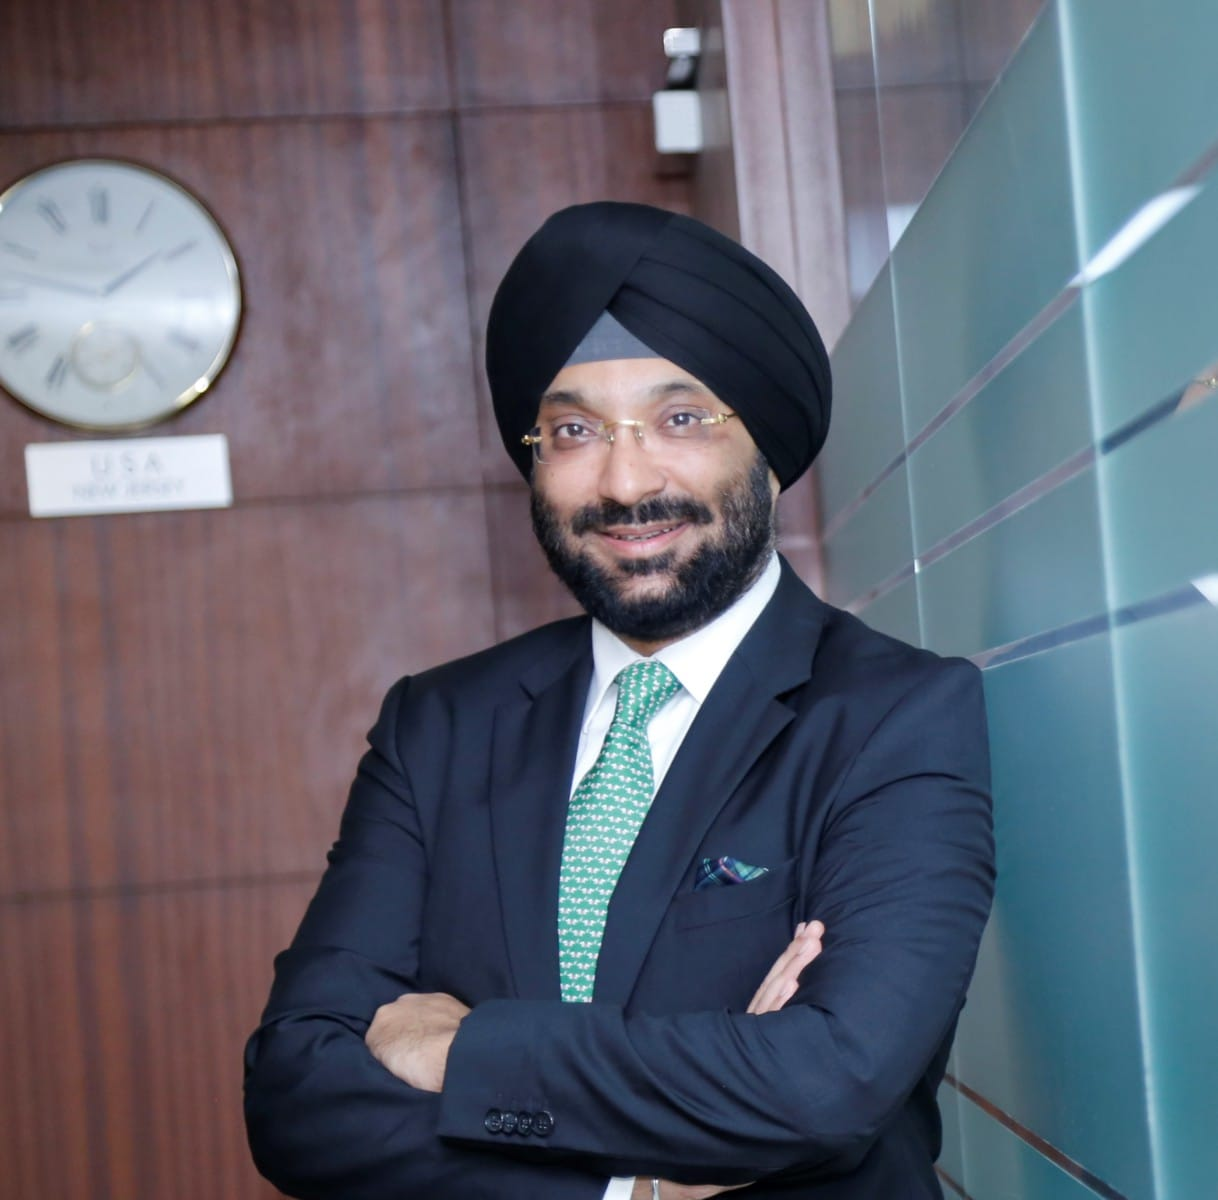 Harshvendra Soin, Global Chief People Officer and Head of Marketing, Tech Mahindra